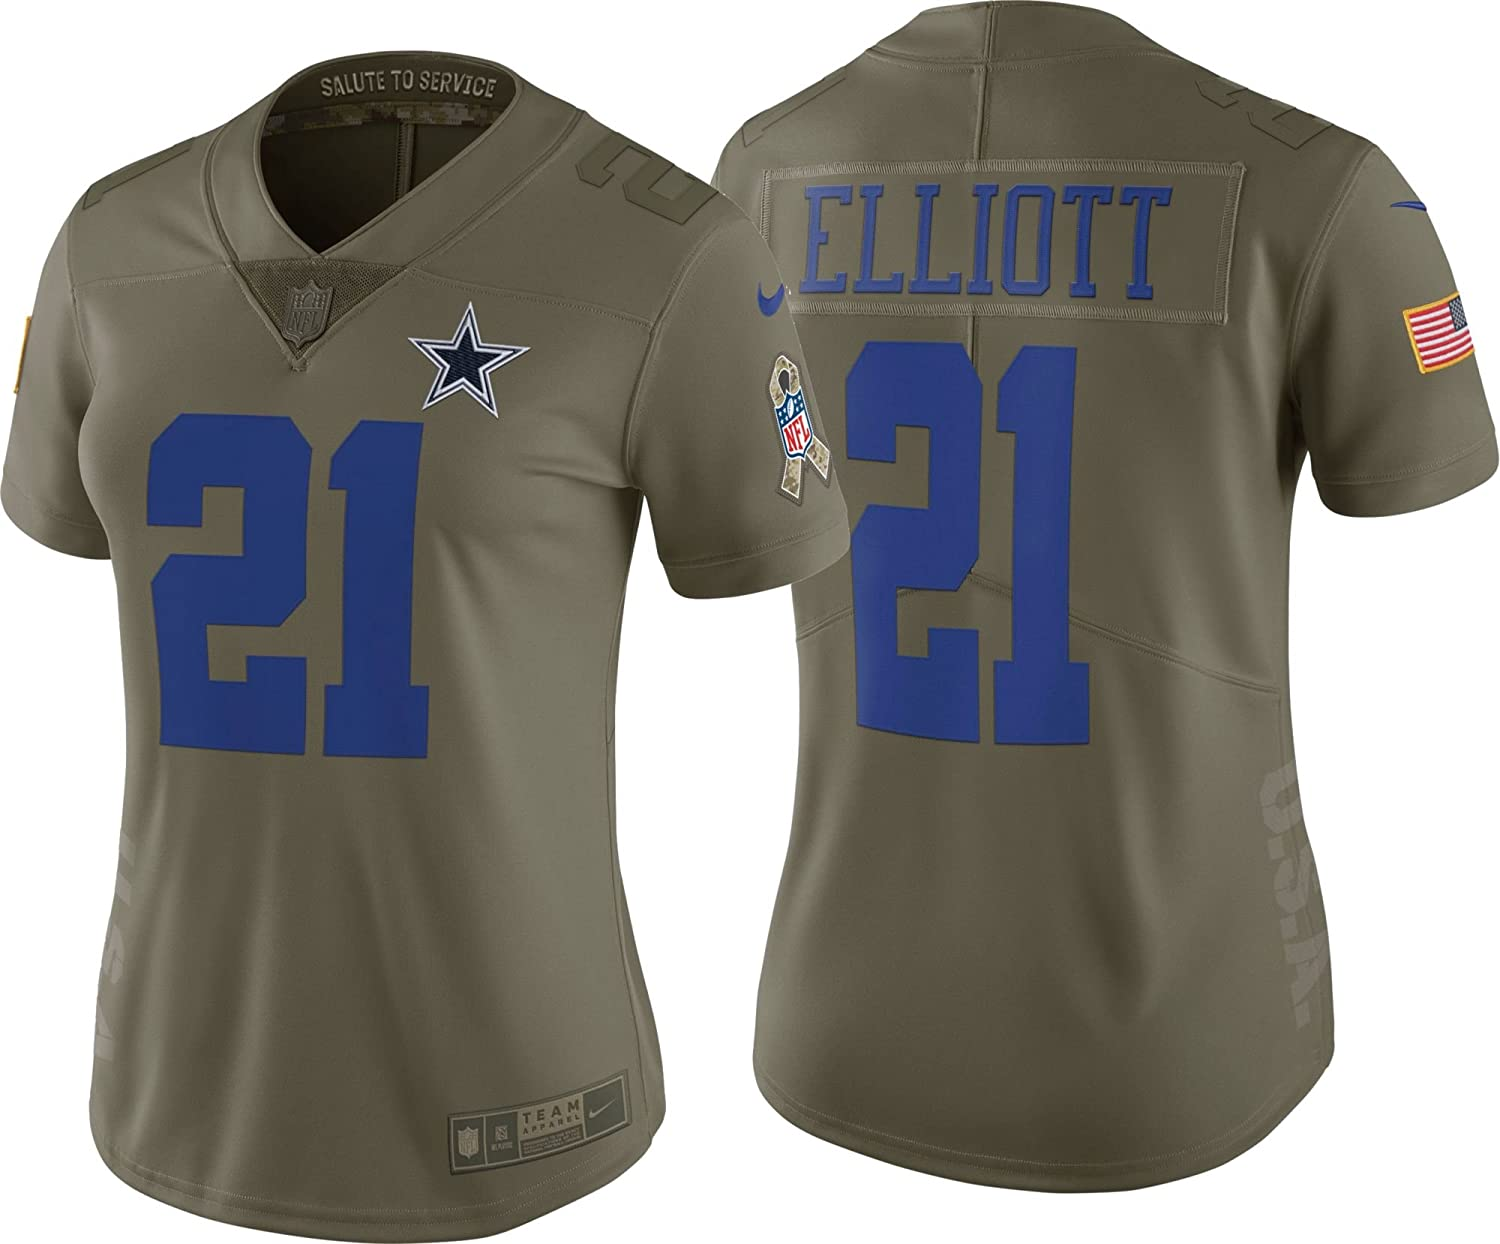 reputable site c9f38 613cf Dallas Cowboys Womens Ezekiel Elliott #21 Nike Limited Salute to Service  Jersey